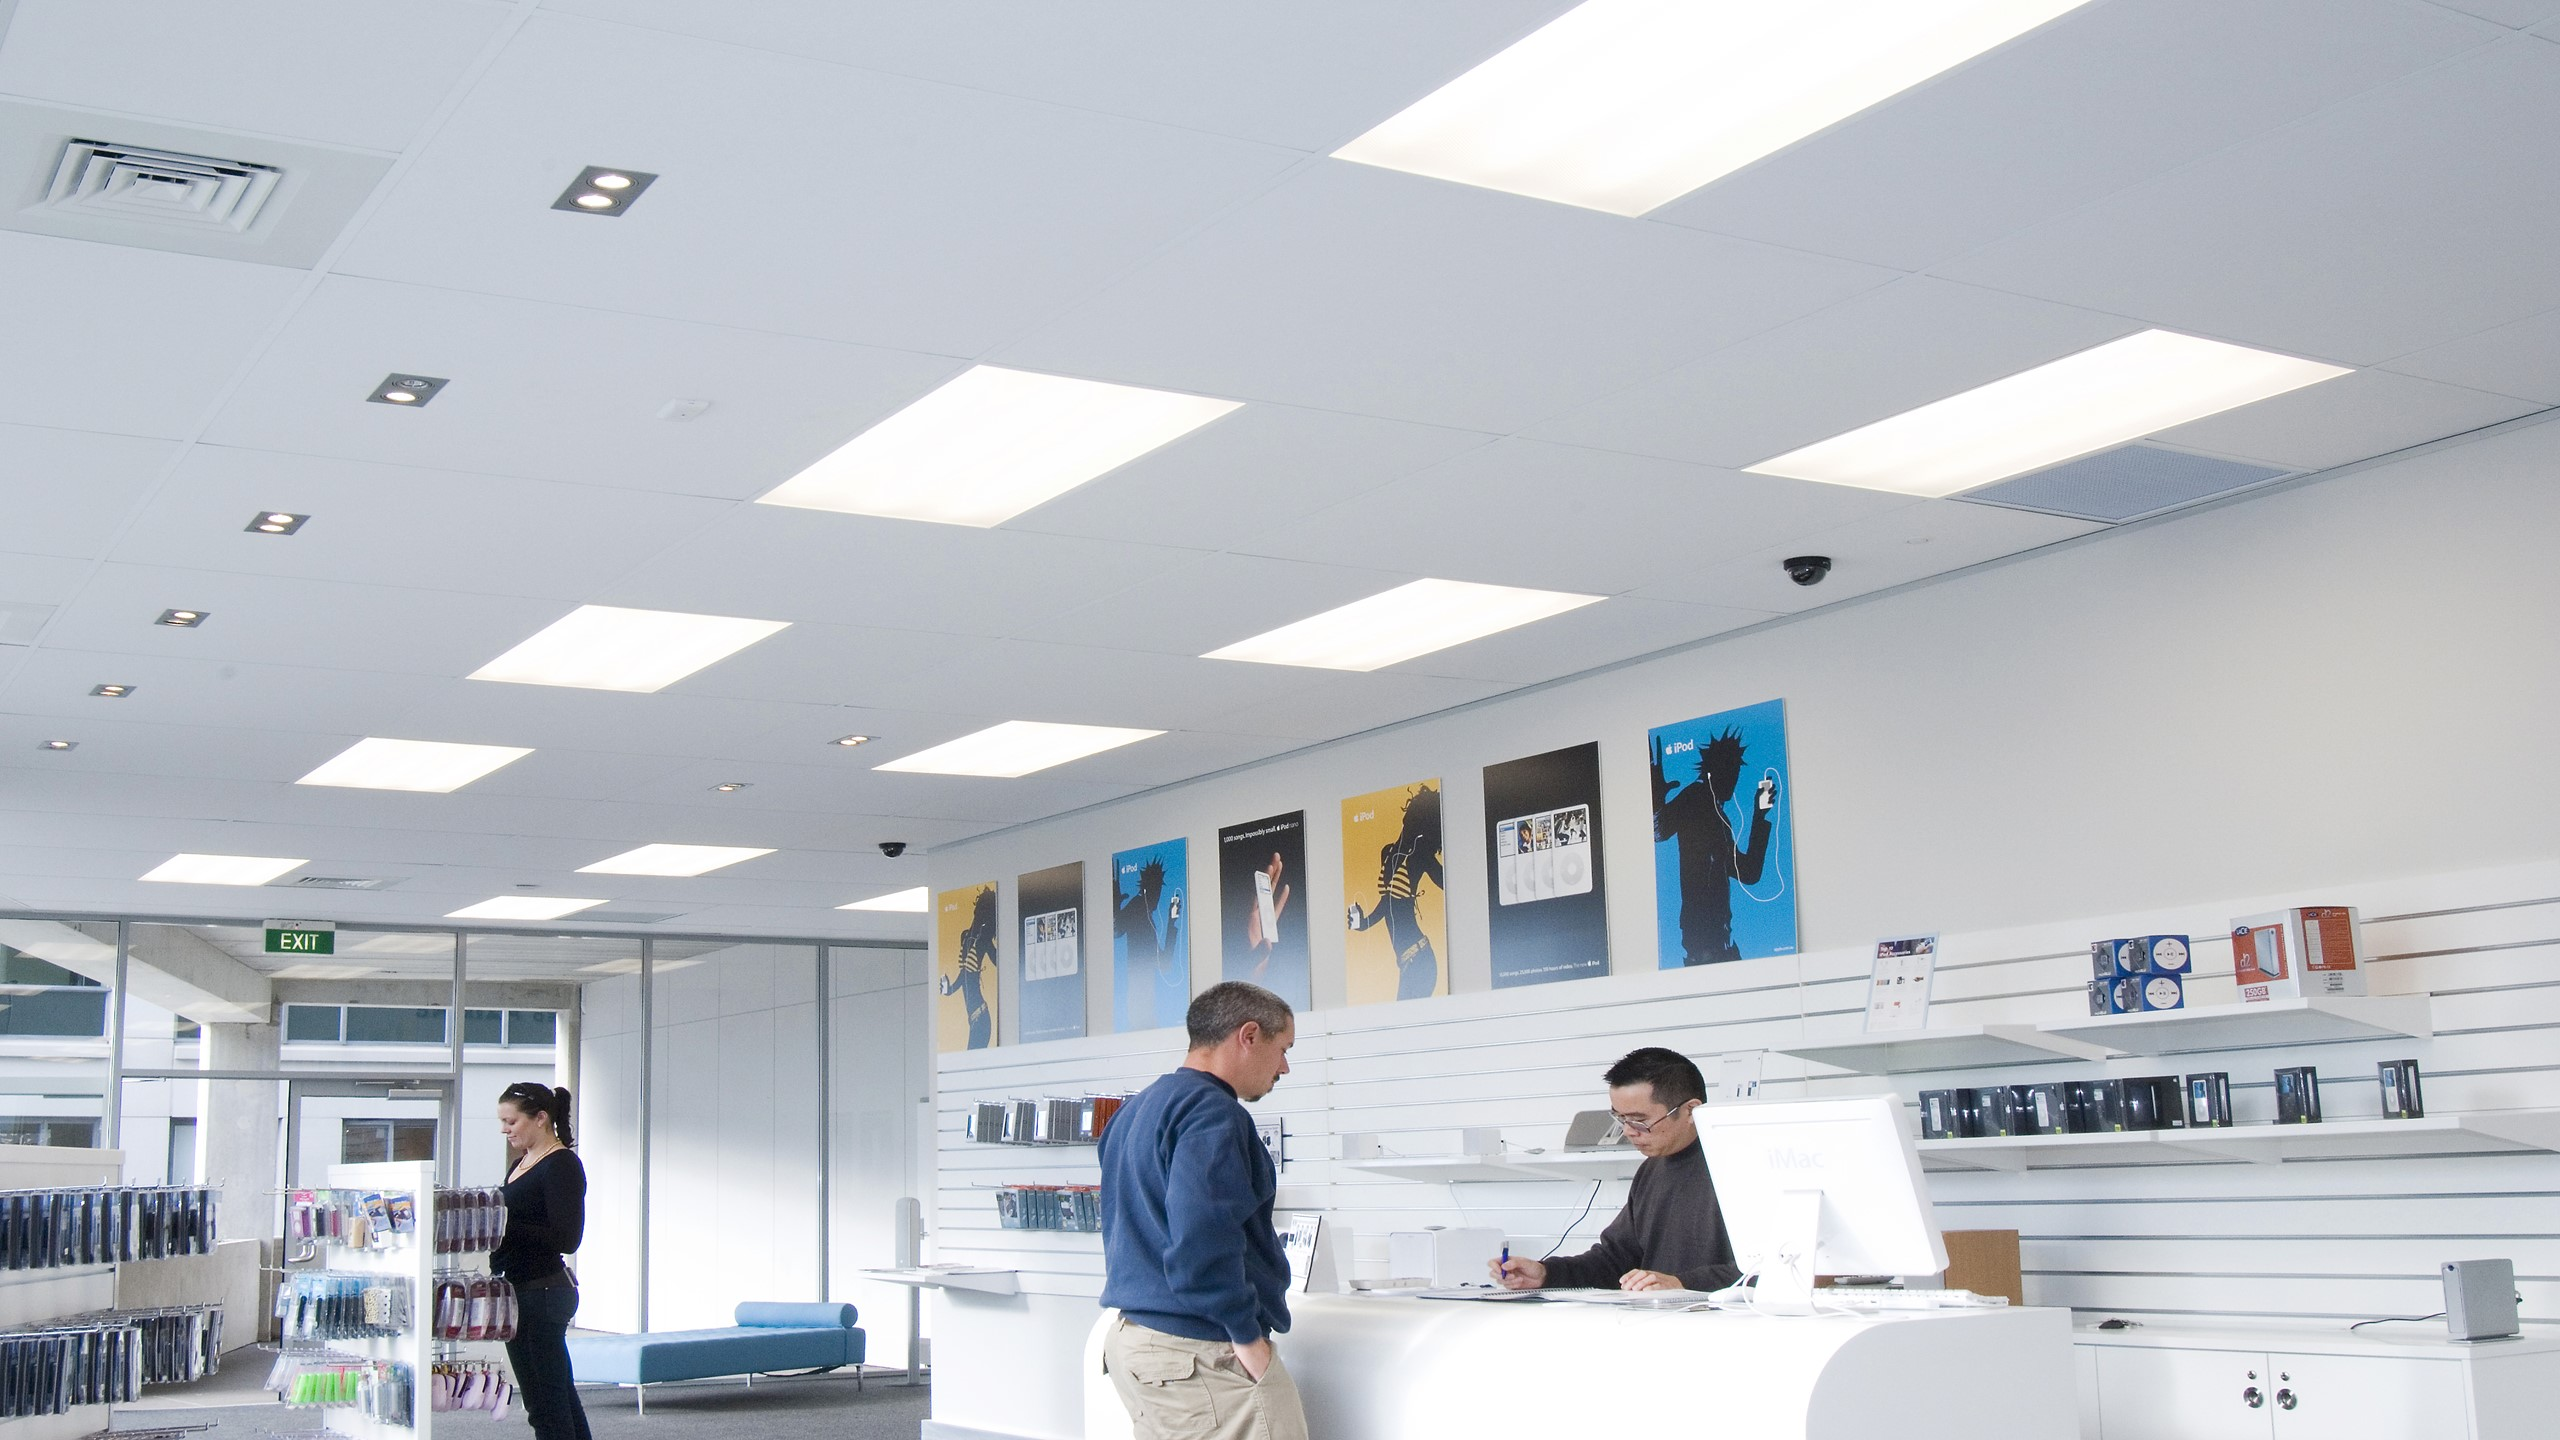 Triton Duo 35 installed into a grid & tile ceiling system